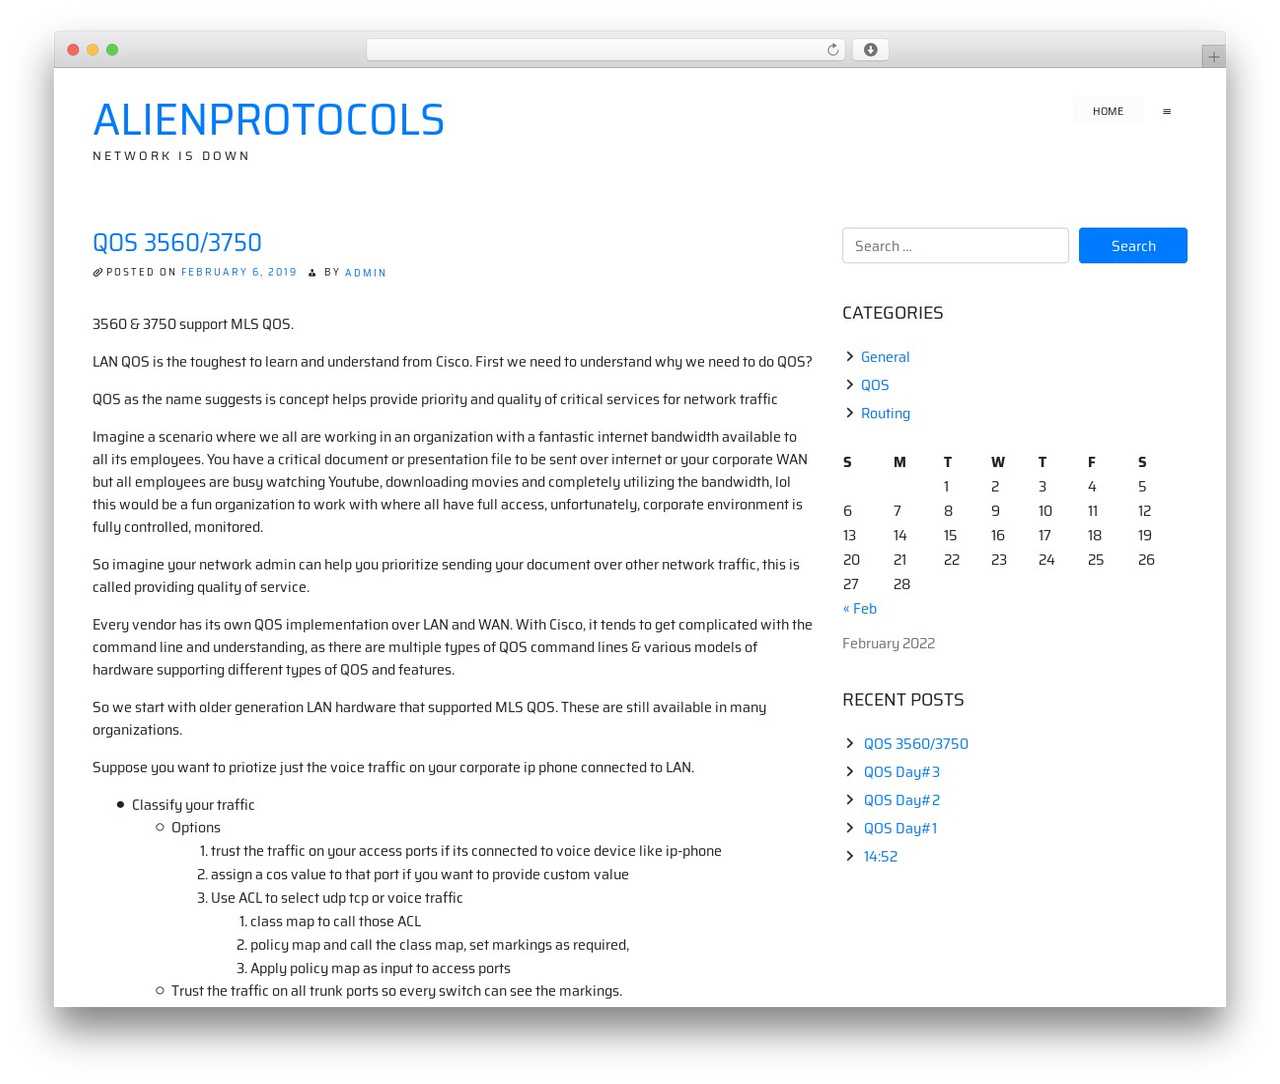 ioBoot WordPress theme design - alienprotocols.com